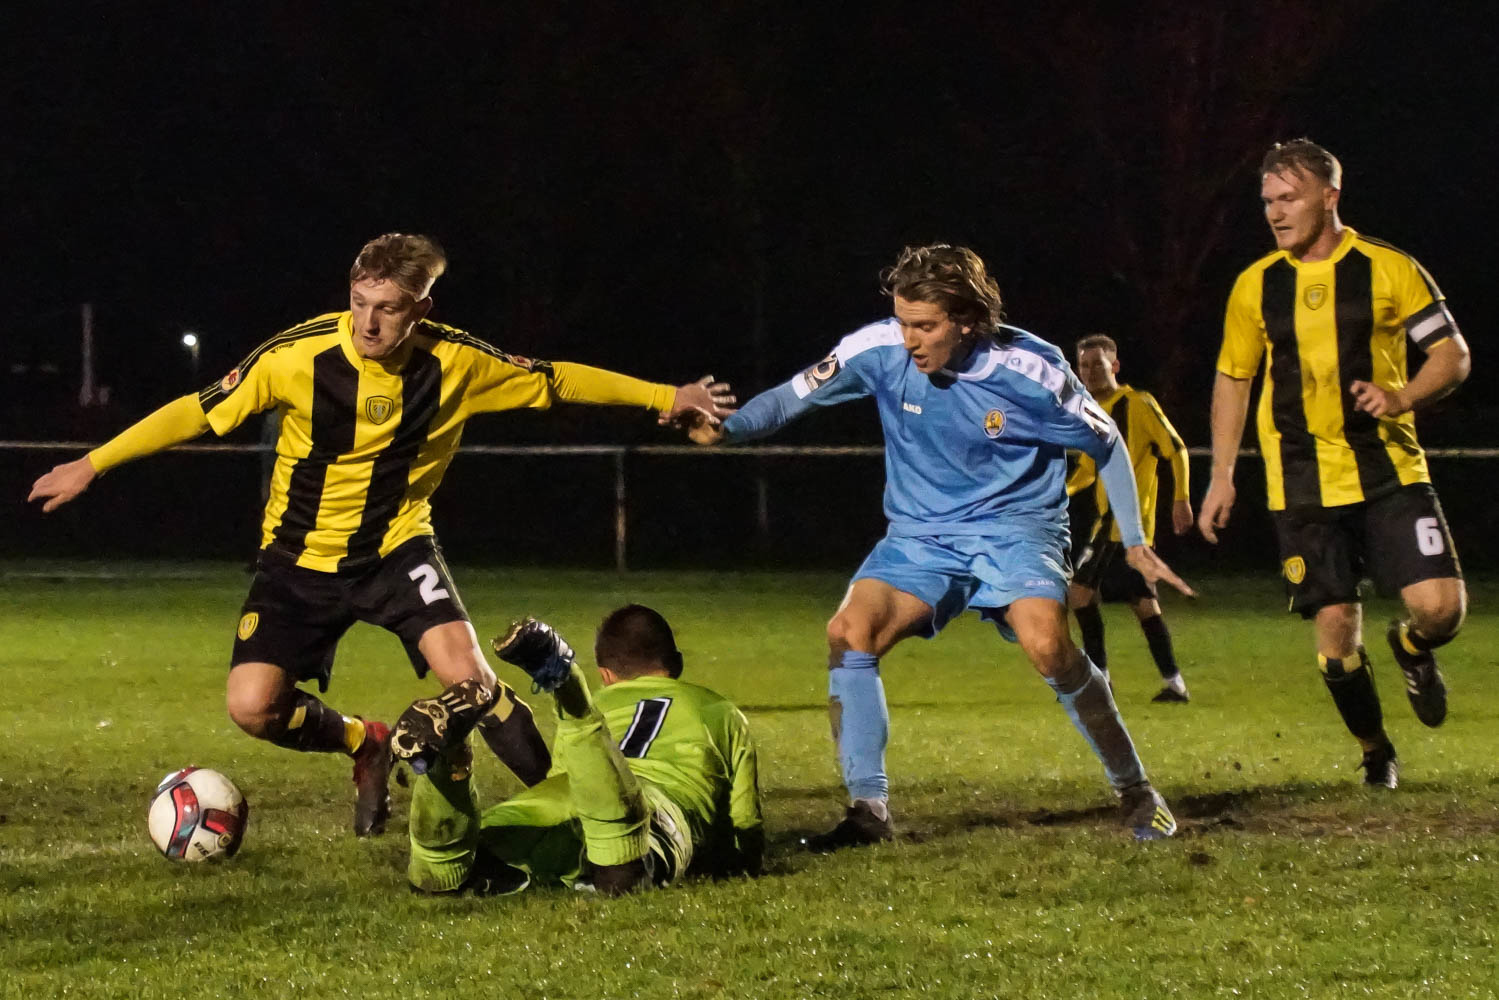 Aiming to bounce back - Southend Manor Picture: MIKEY CARTWRIGHT